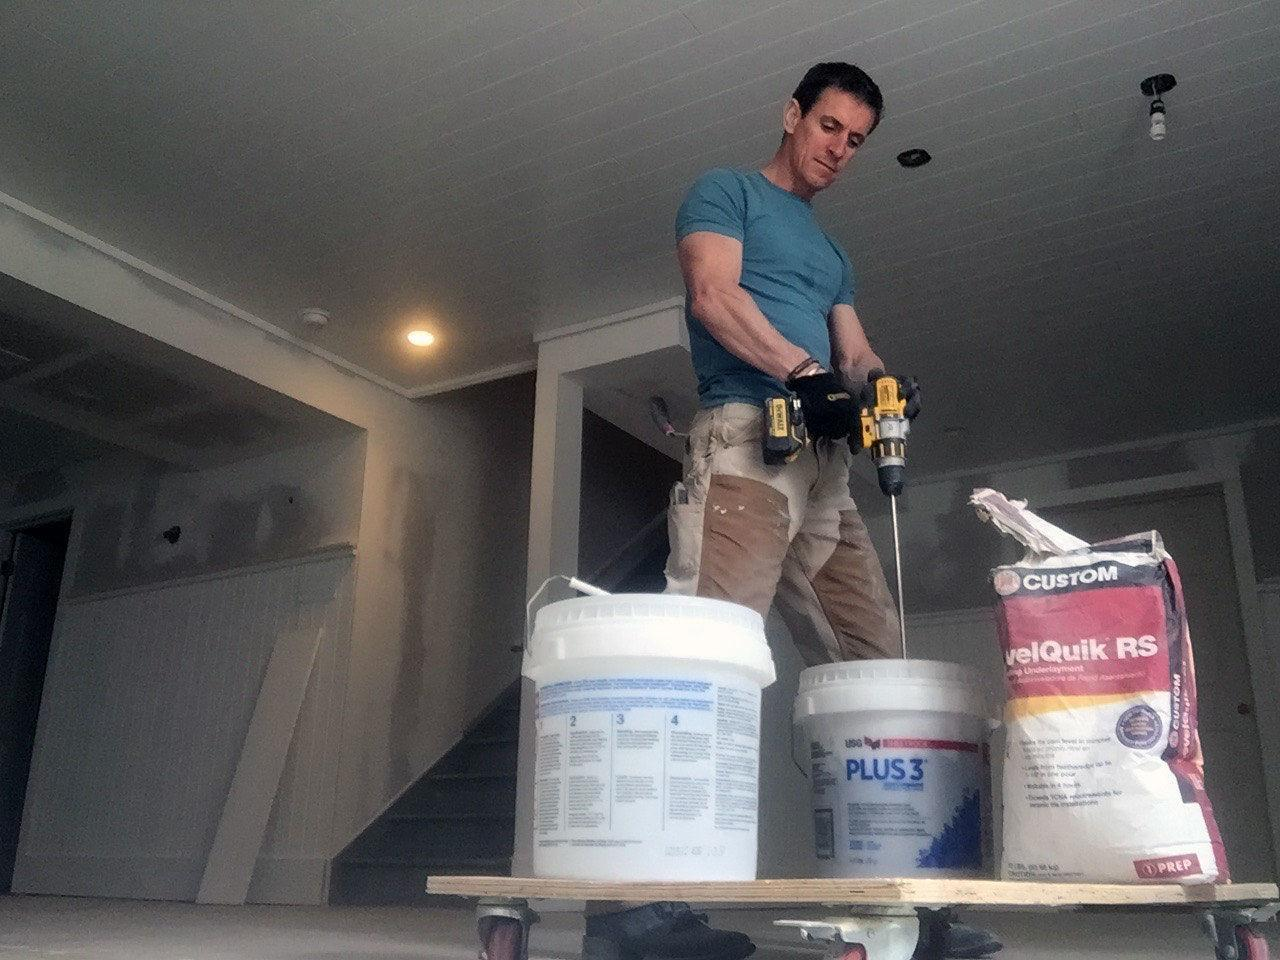 <p>In most remodeling applications we use floor leveler to <i>flatten</i> the floor, not make it level. If your floor has deep pocks or bellies (some people call them 'bird baths') more than a 1/4-inch, mix up some floor leveler and pour it on. The key is getting the right viscosity: A little more viscous than water—but not much. It needs to be fluid enough to flow so gravity can draw it into a low spot. Strike off edges with a flat trowel.</p>